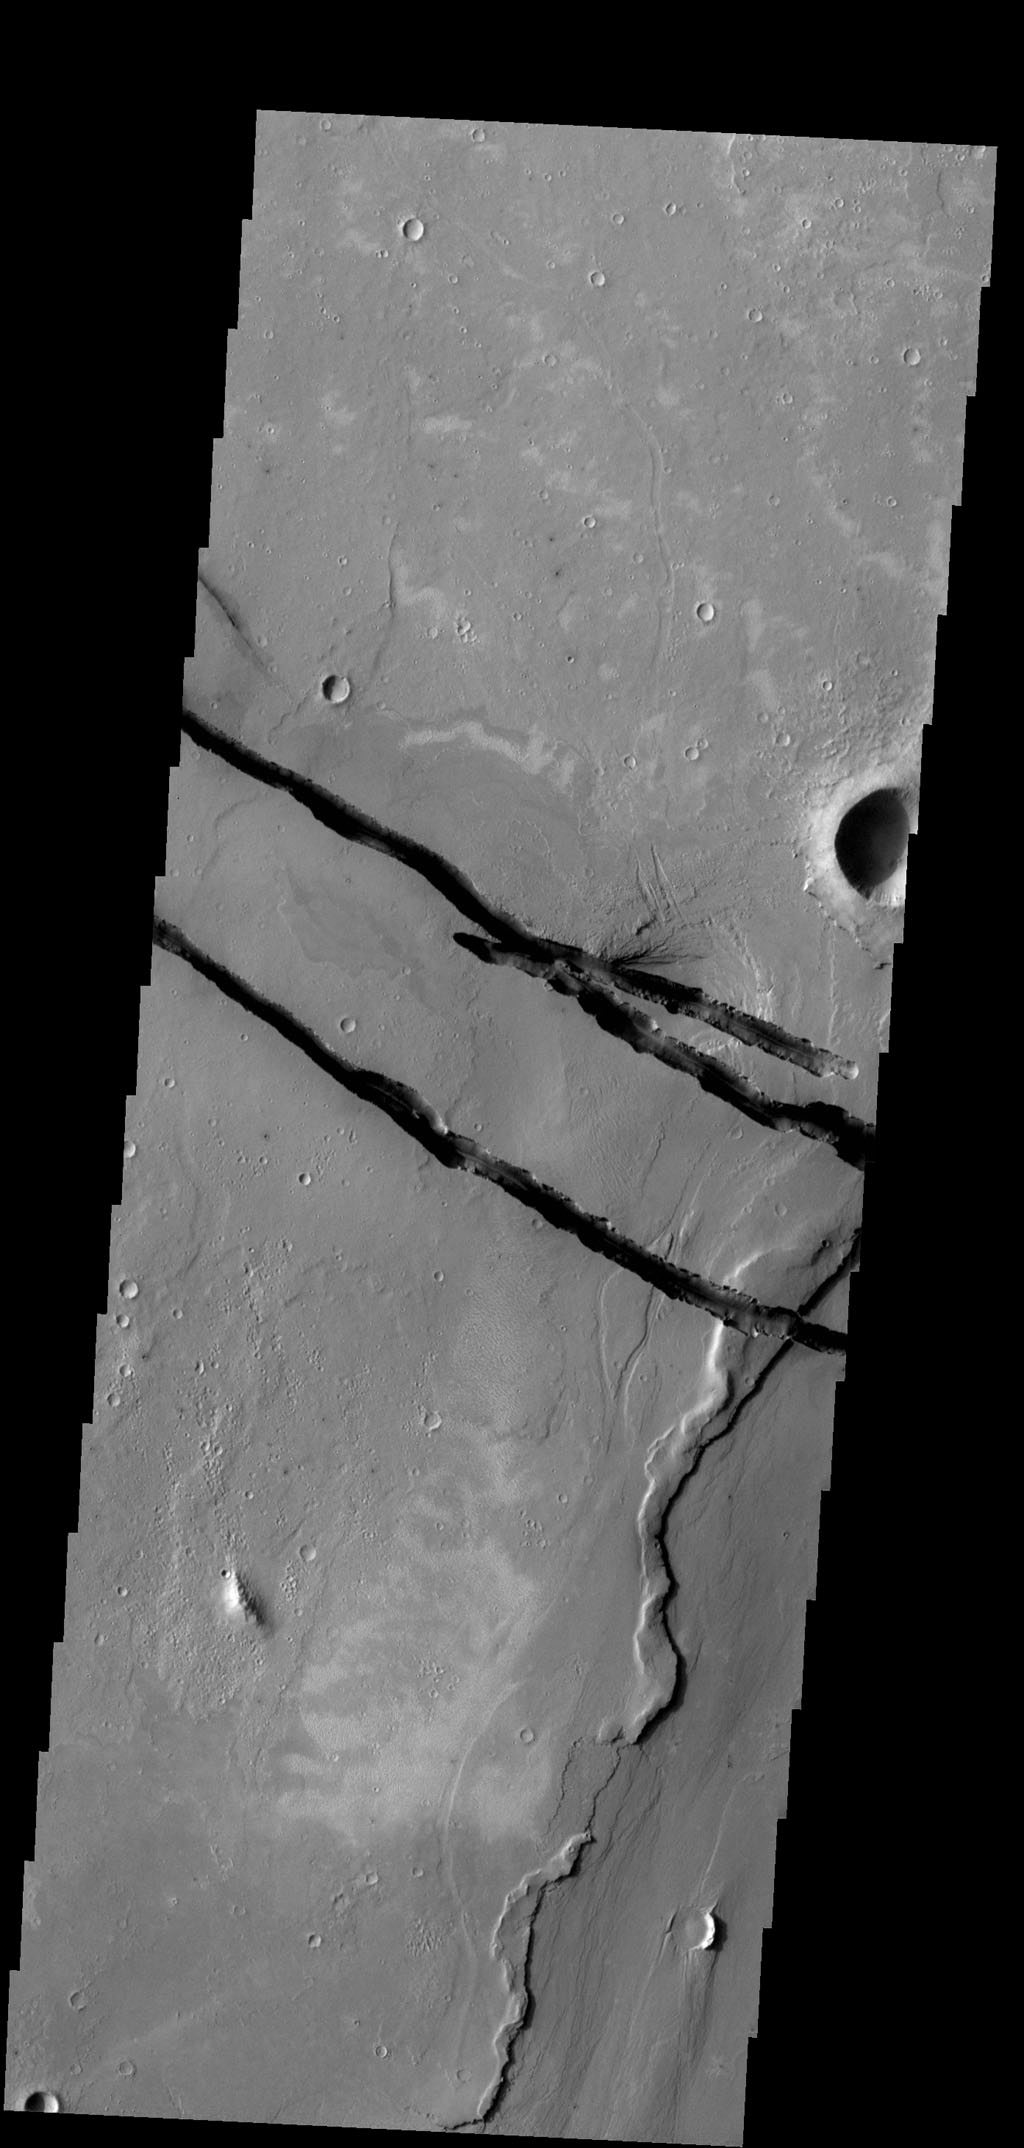 The fractures in this image are part of a large system of fractures called Cerberus Fossae. Athabasca Valles is visible in the lower right corner of the image as seen by NASA's 2001 Mars Odyssey spacecraft.